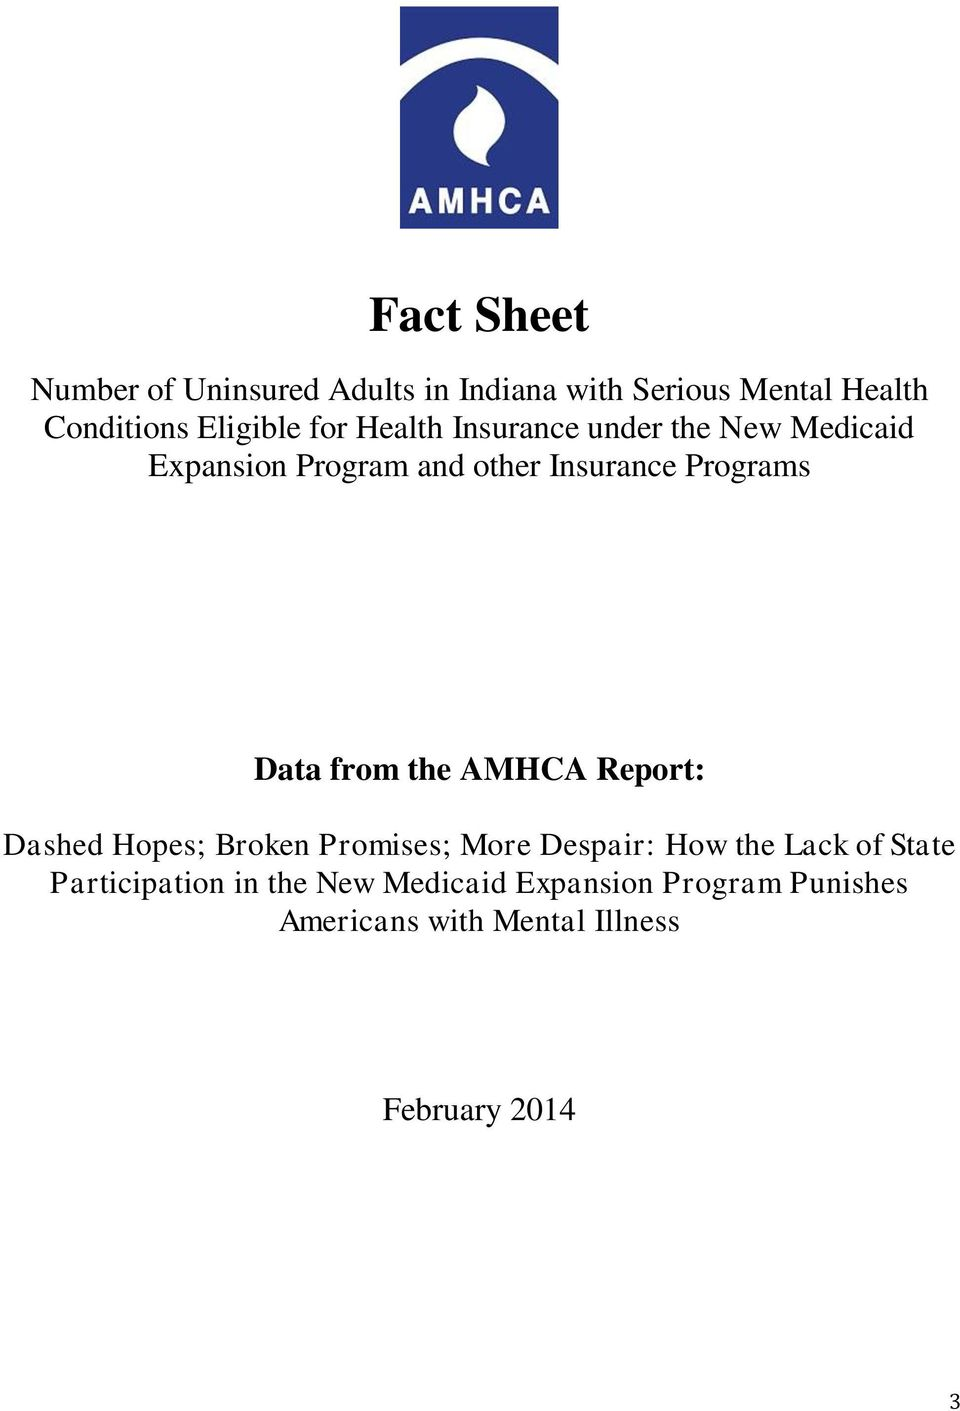 from the AMHCA Report: Dashed Hopes; Broken Promises; More Despair: How the Lack of State